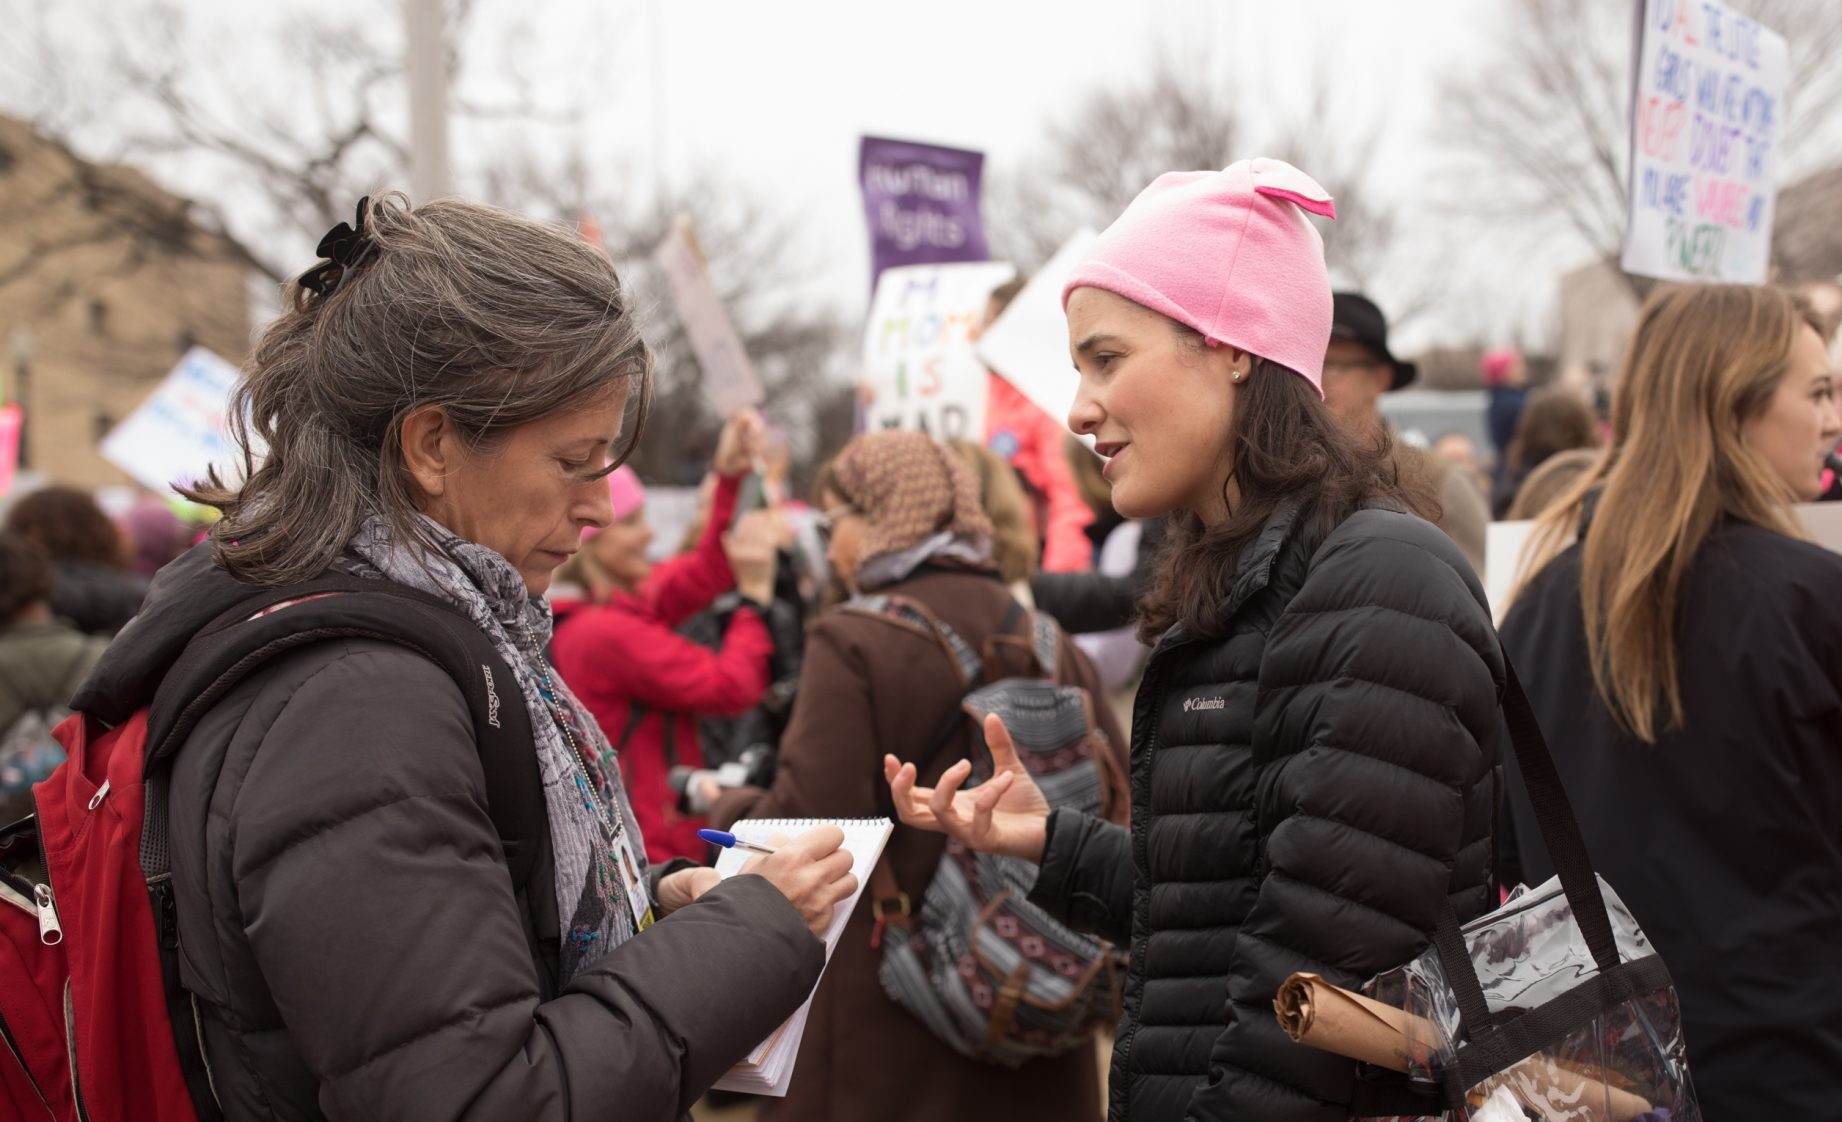 Marjorie Brimley getting interviewed during the Women's March in DC